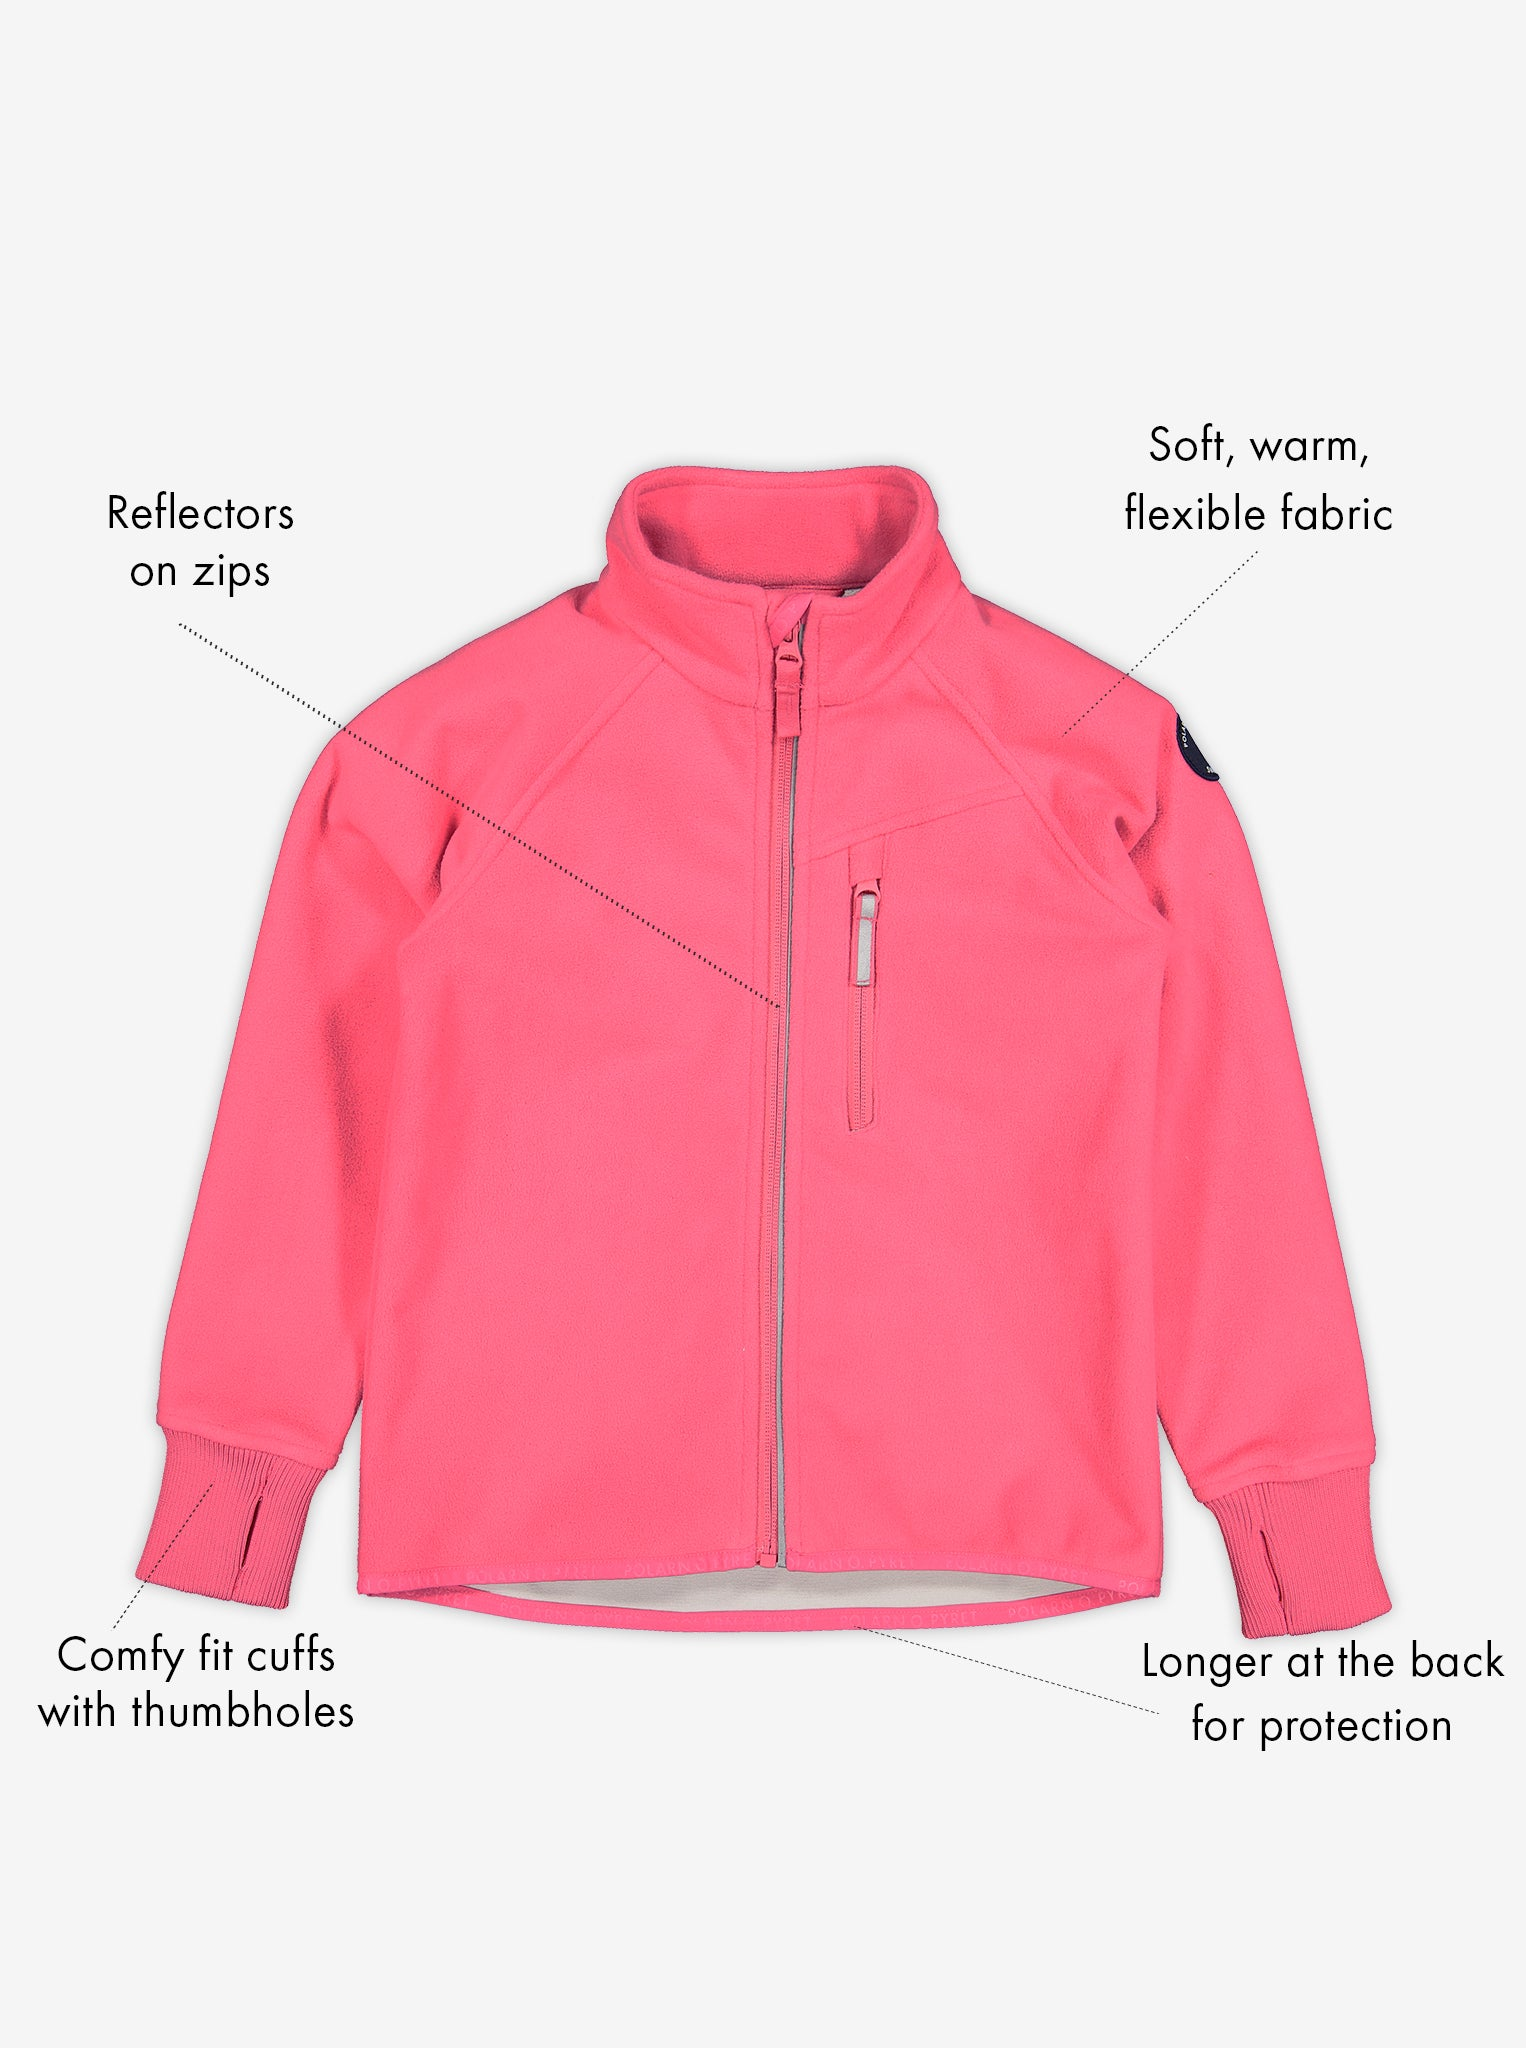 Pink, kids waterproof fleece jacket made of soft and warm fabric, comes with cuffs with thumbholes & reflectors on zips.